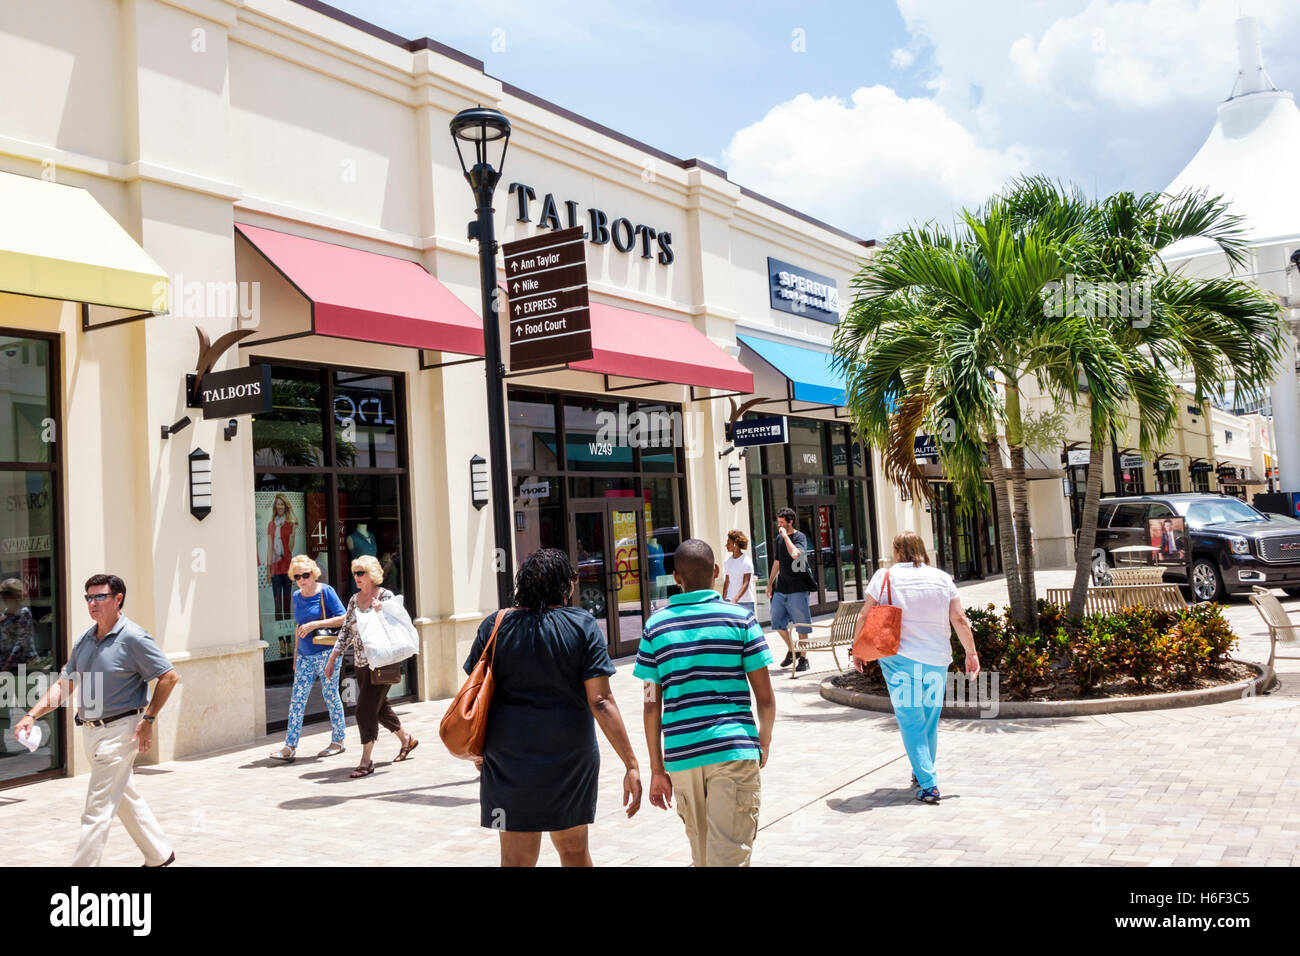 Palm Beach Florida Outlets Shopping Talbots Open Air Mall Stock Photo Royalty Free Image